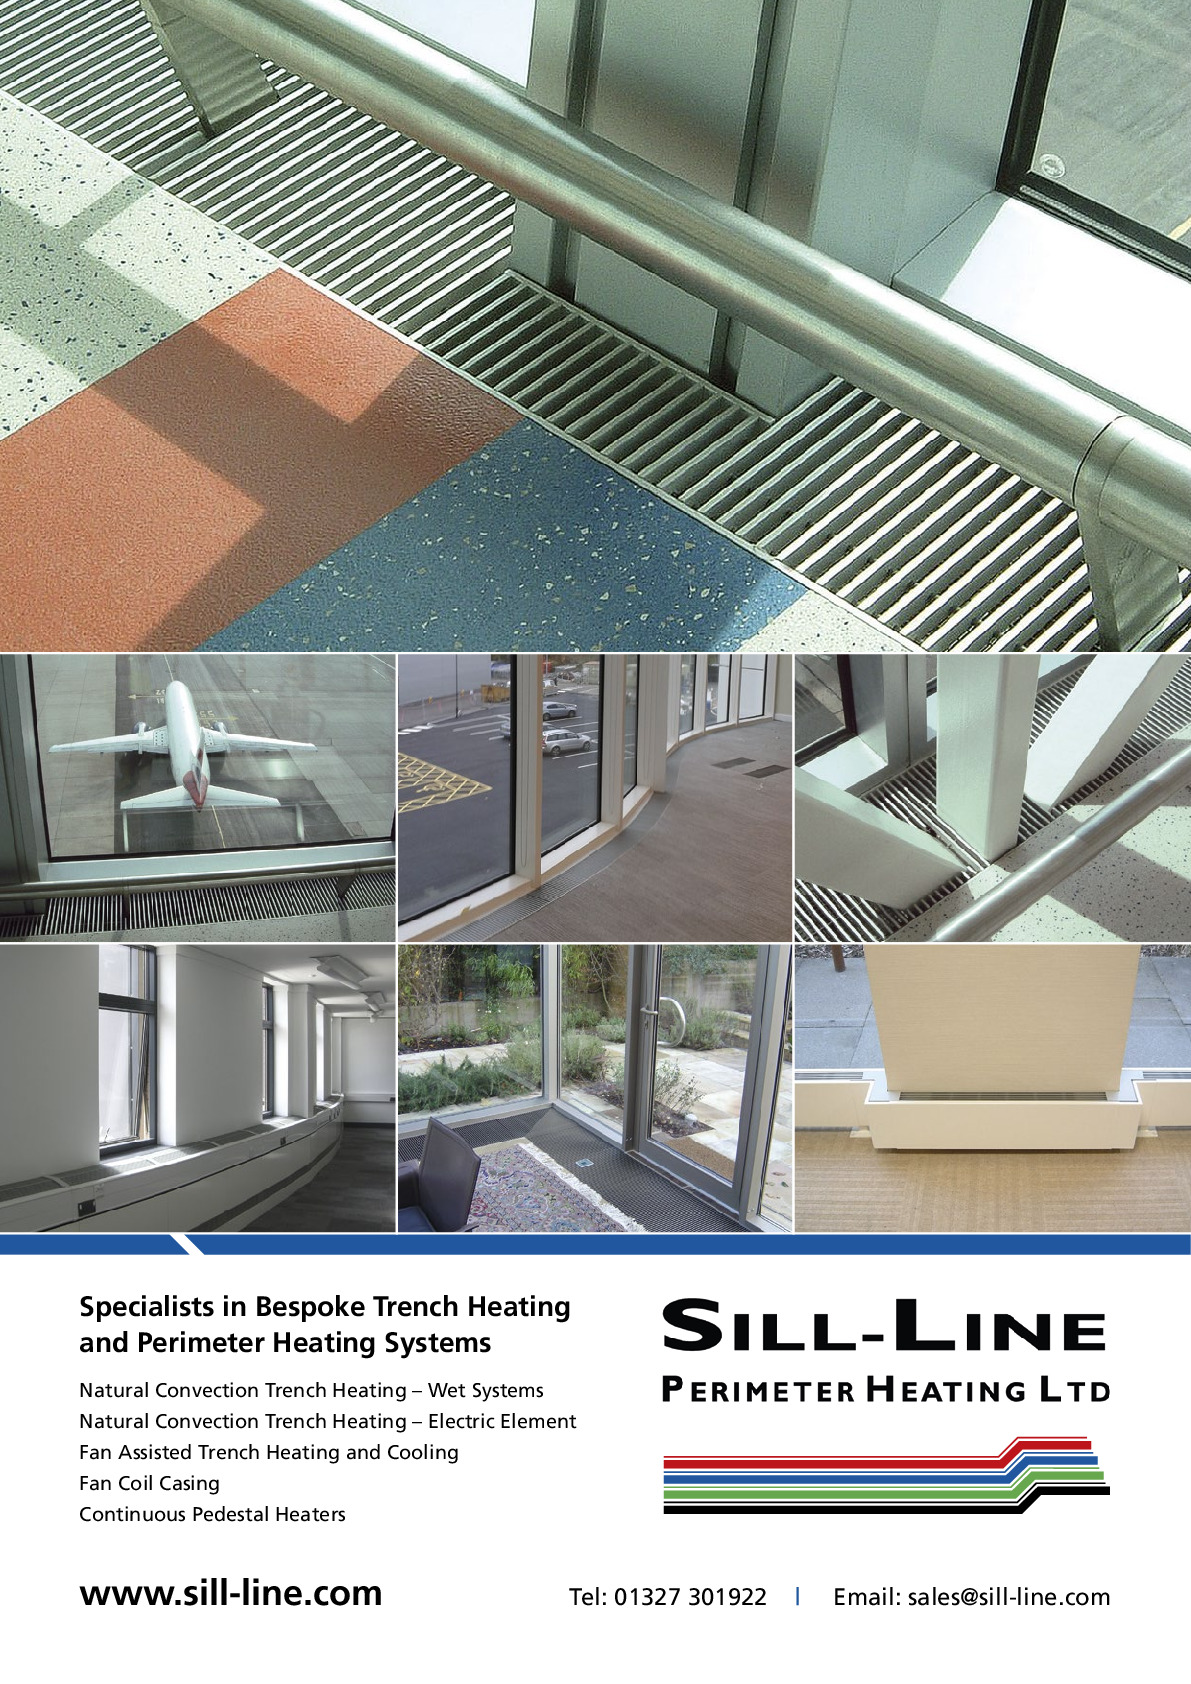 Sill-line Perimeter Heating  advertisement thumbnail